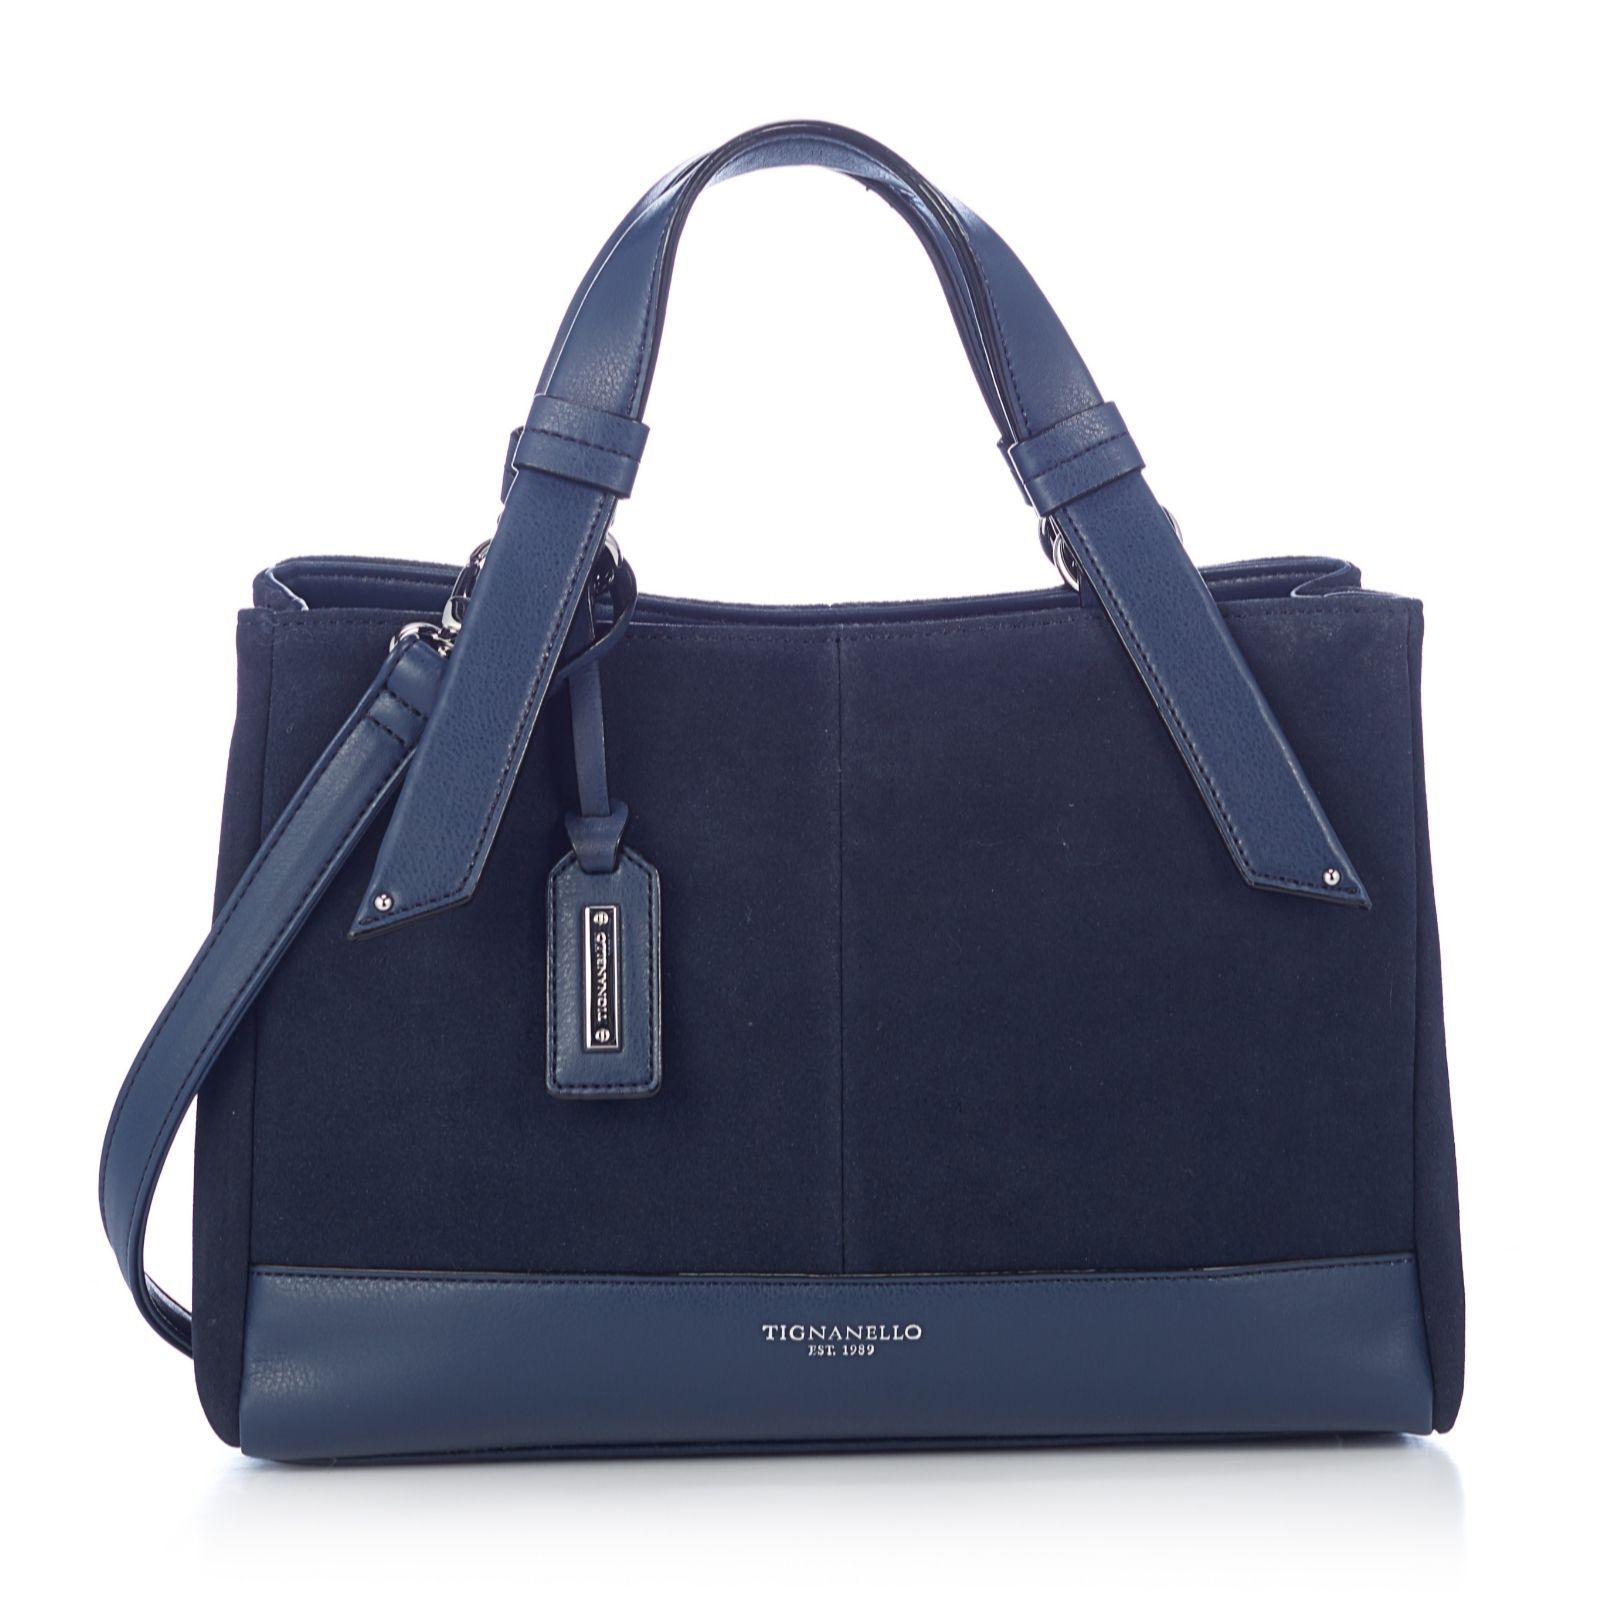 161481 Tignanello Waterproof Suede And Leather Satchel Bag With Rfid Protection Qvc Price